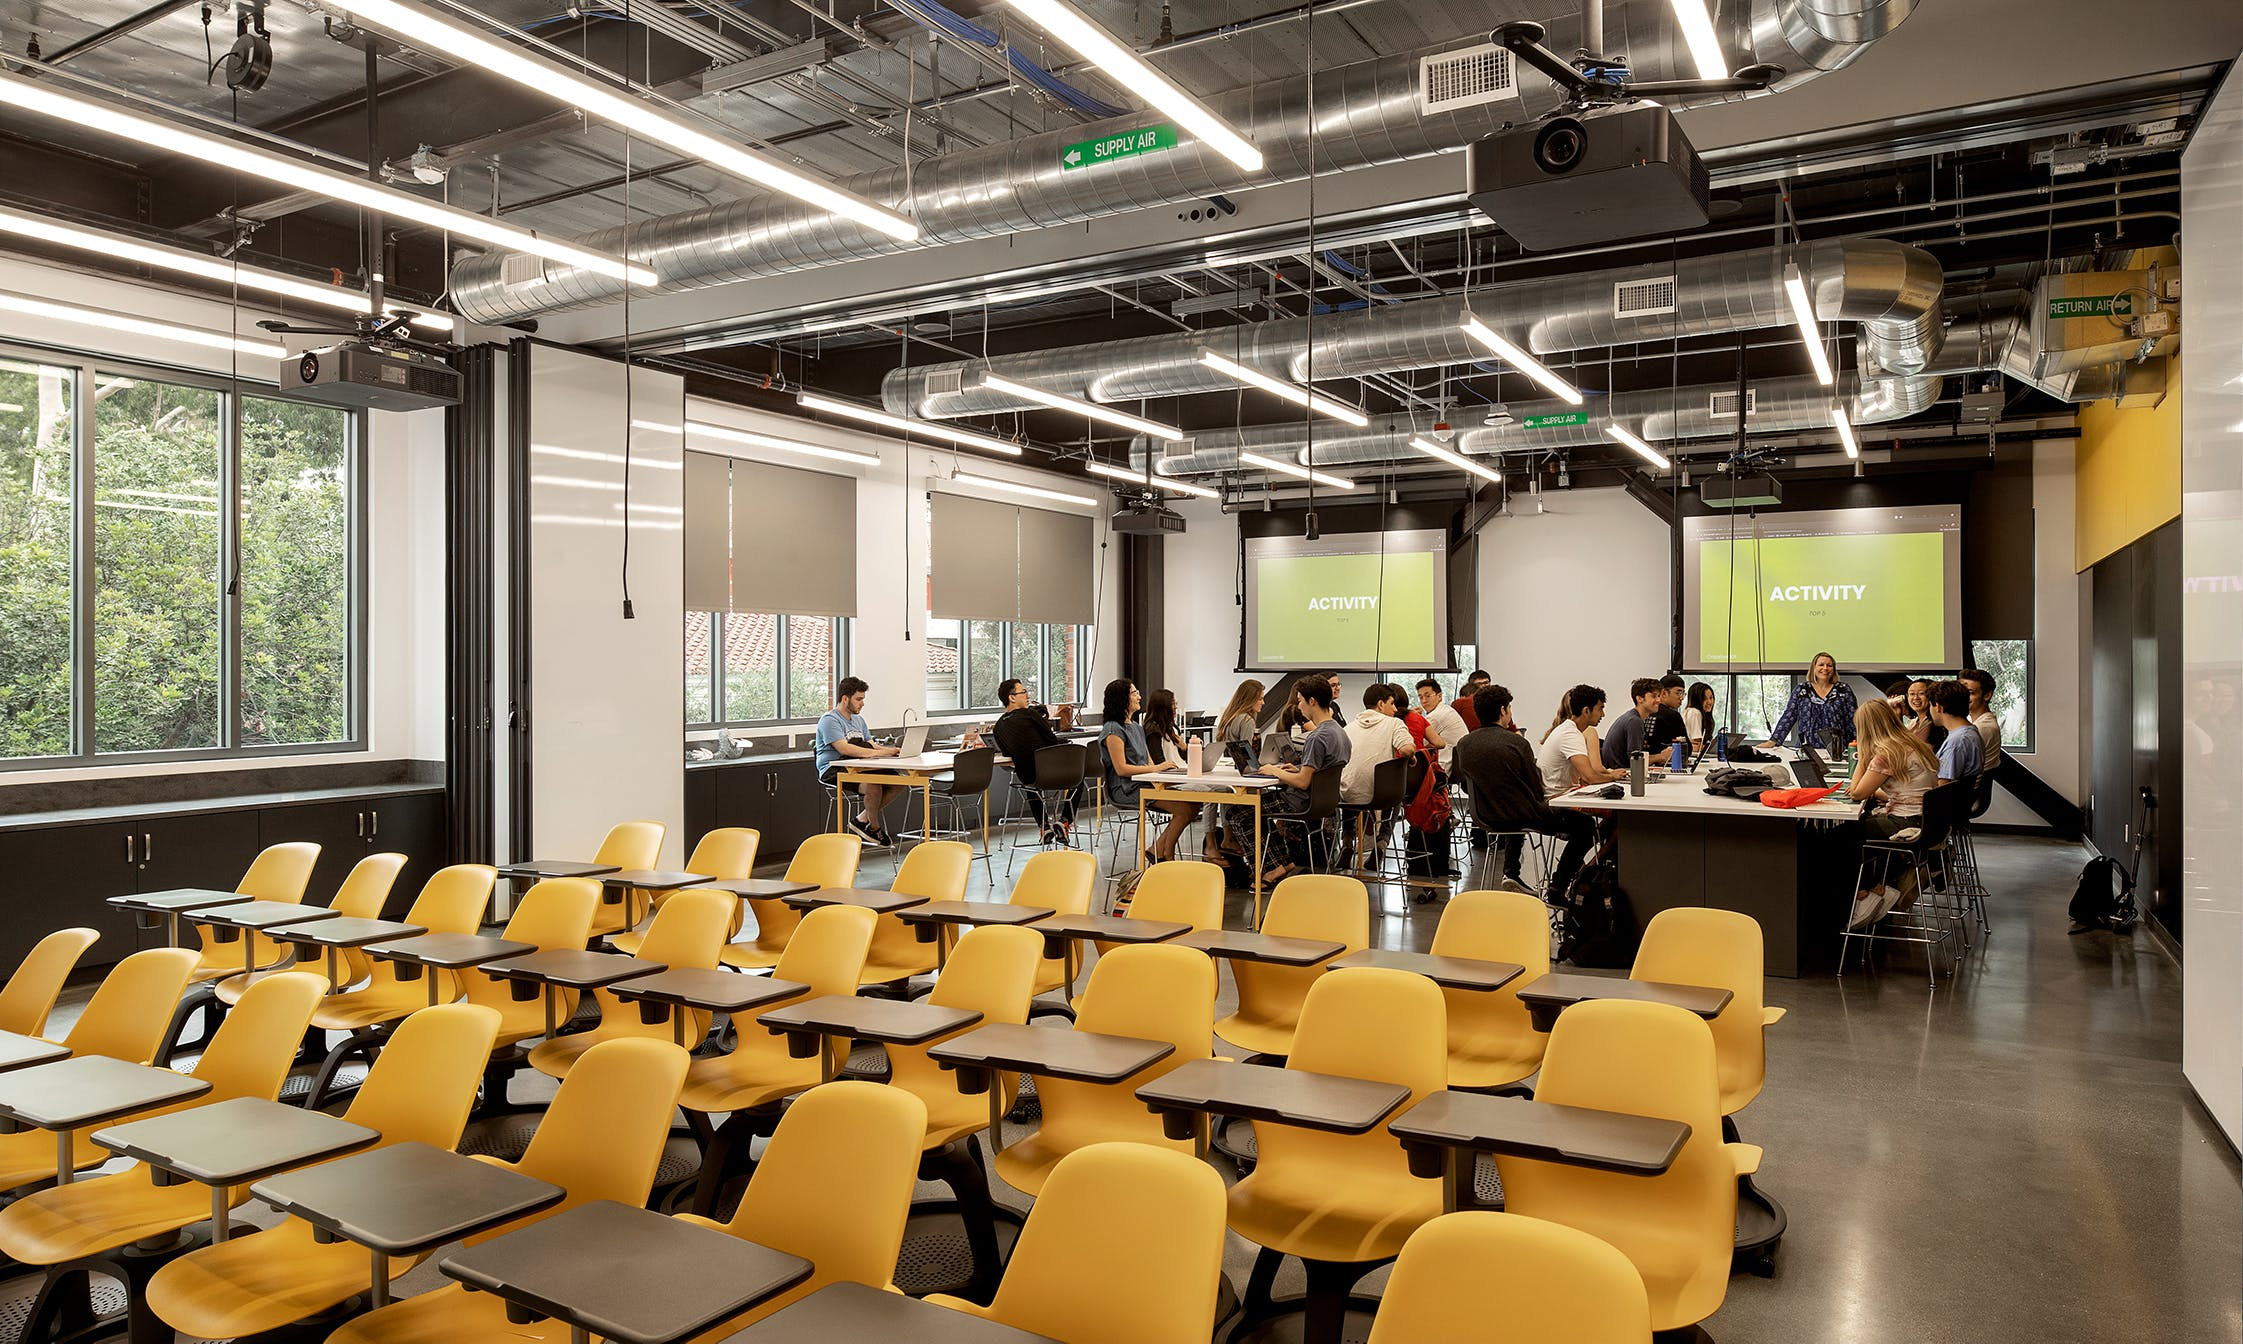 Open space classroom with empty chairs and group of students working in the background